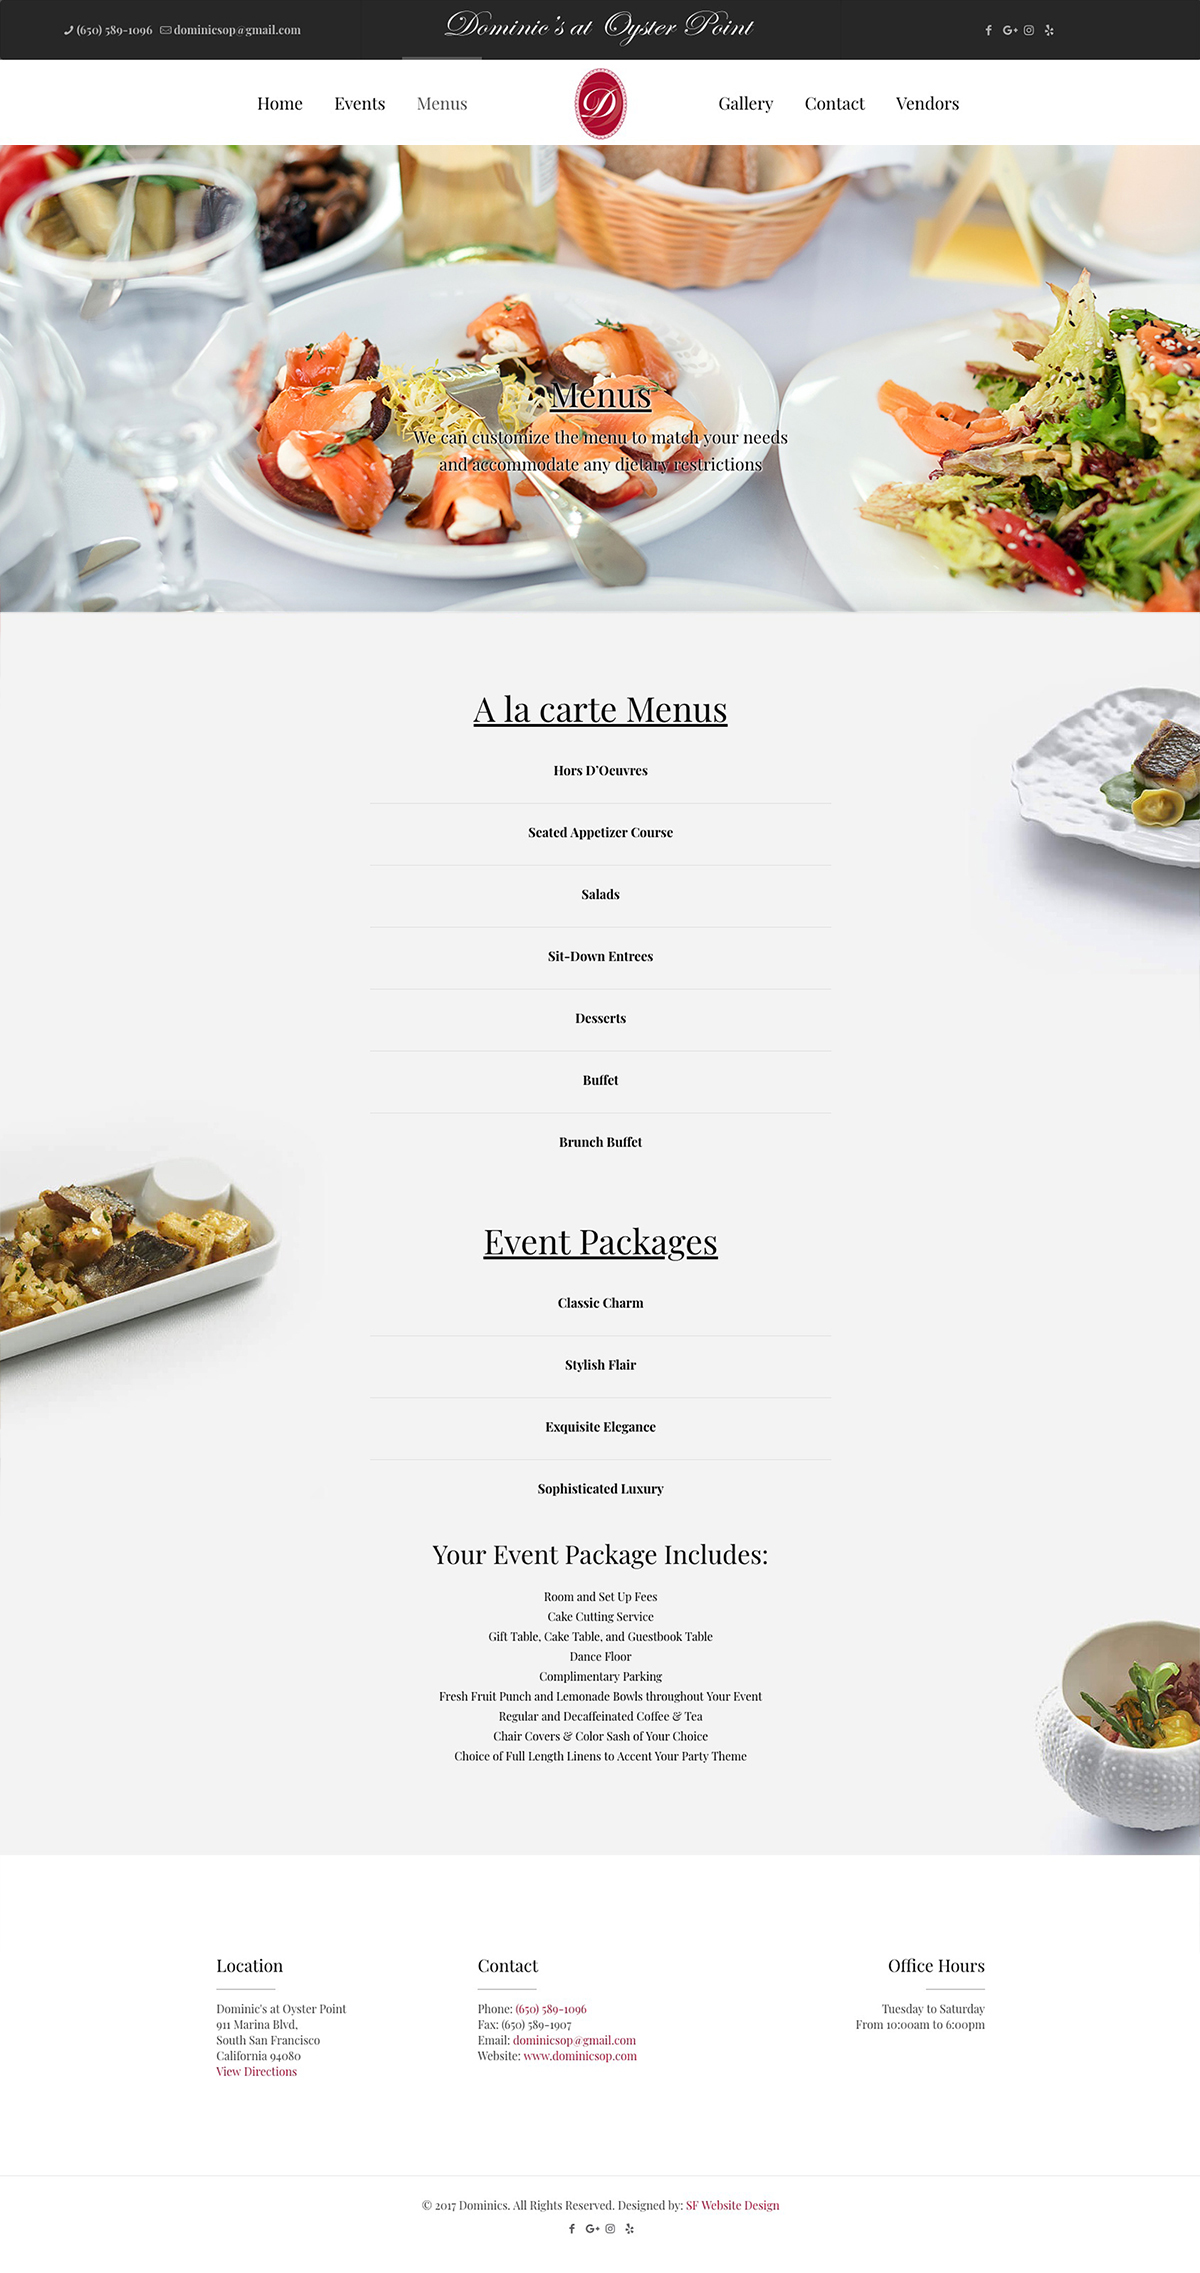 Dominics at Oyster Point menu design